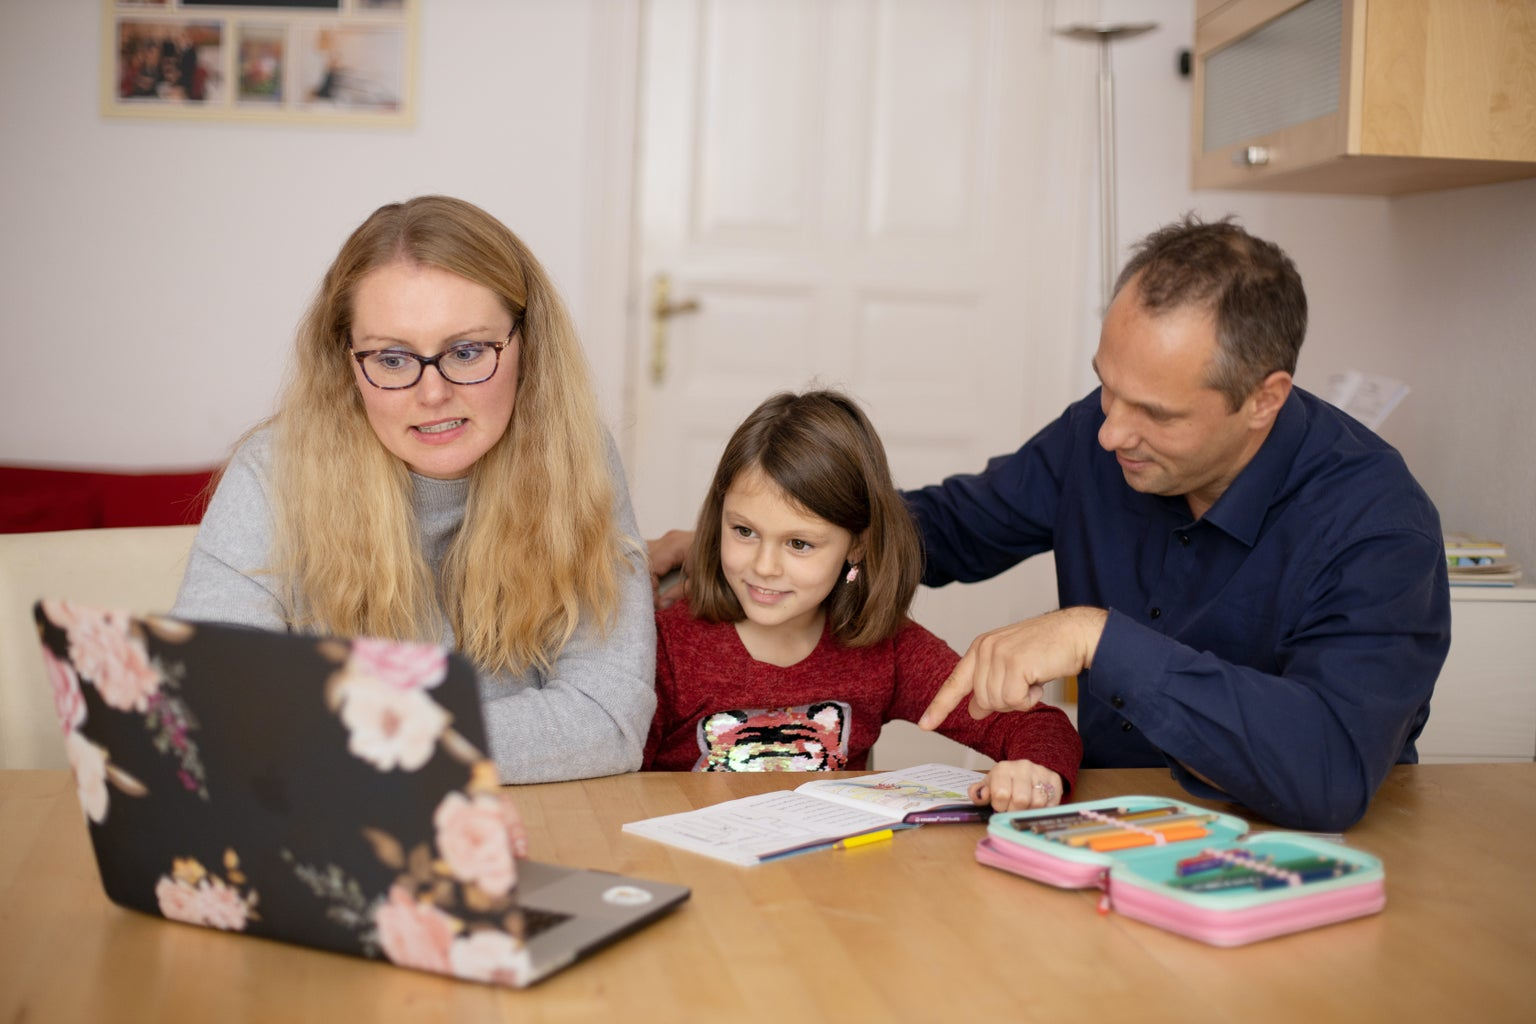 Parents helping their daughter with her homework at the kitchen table.